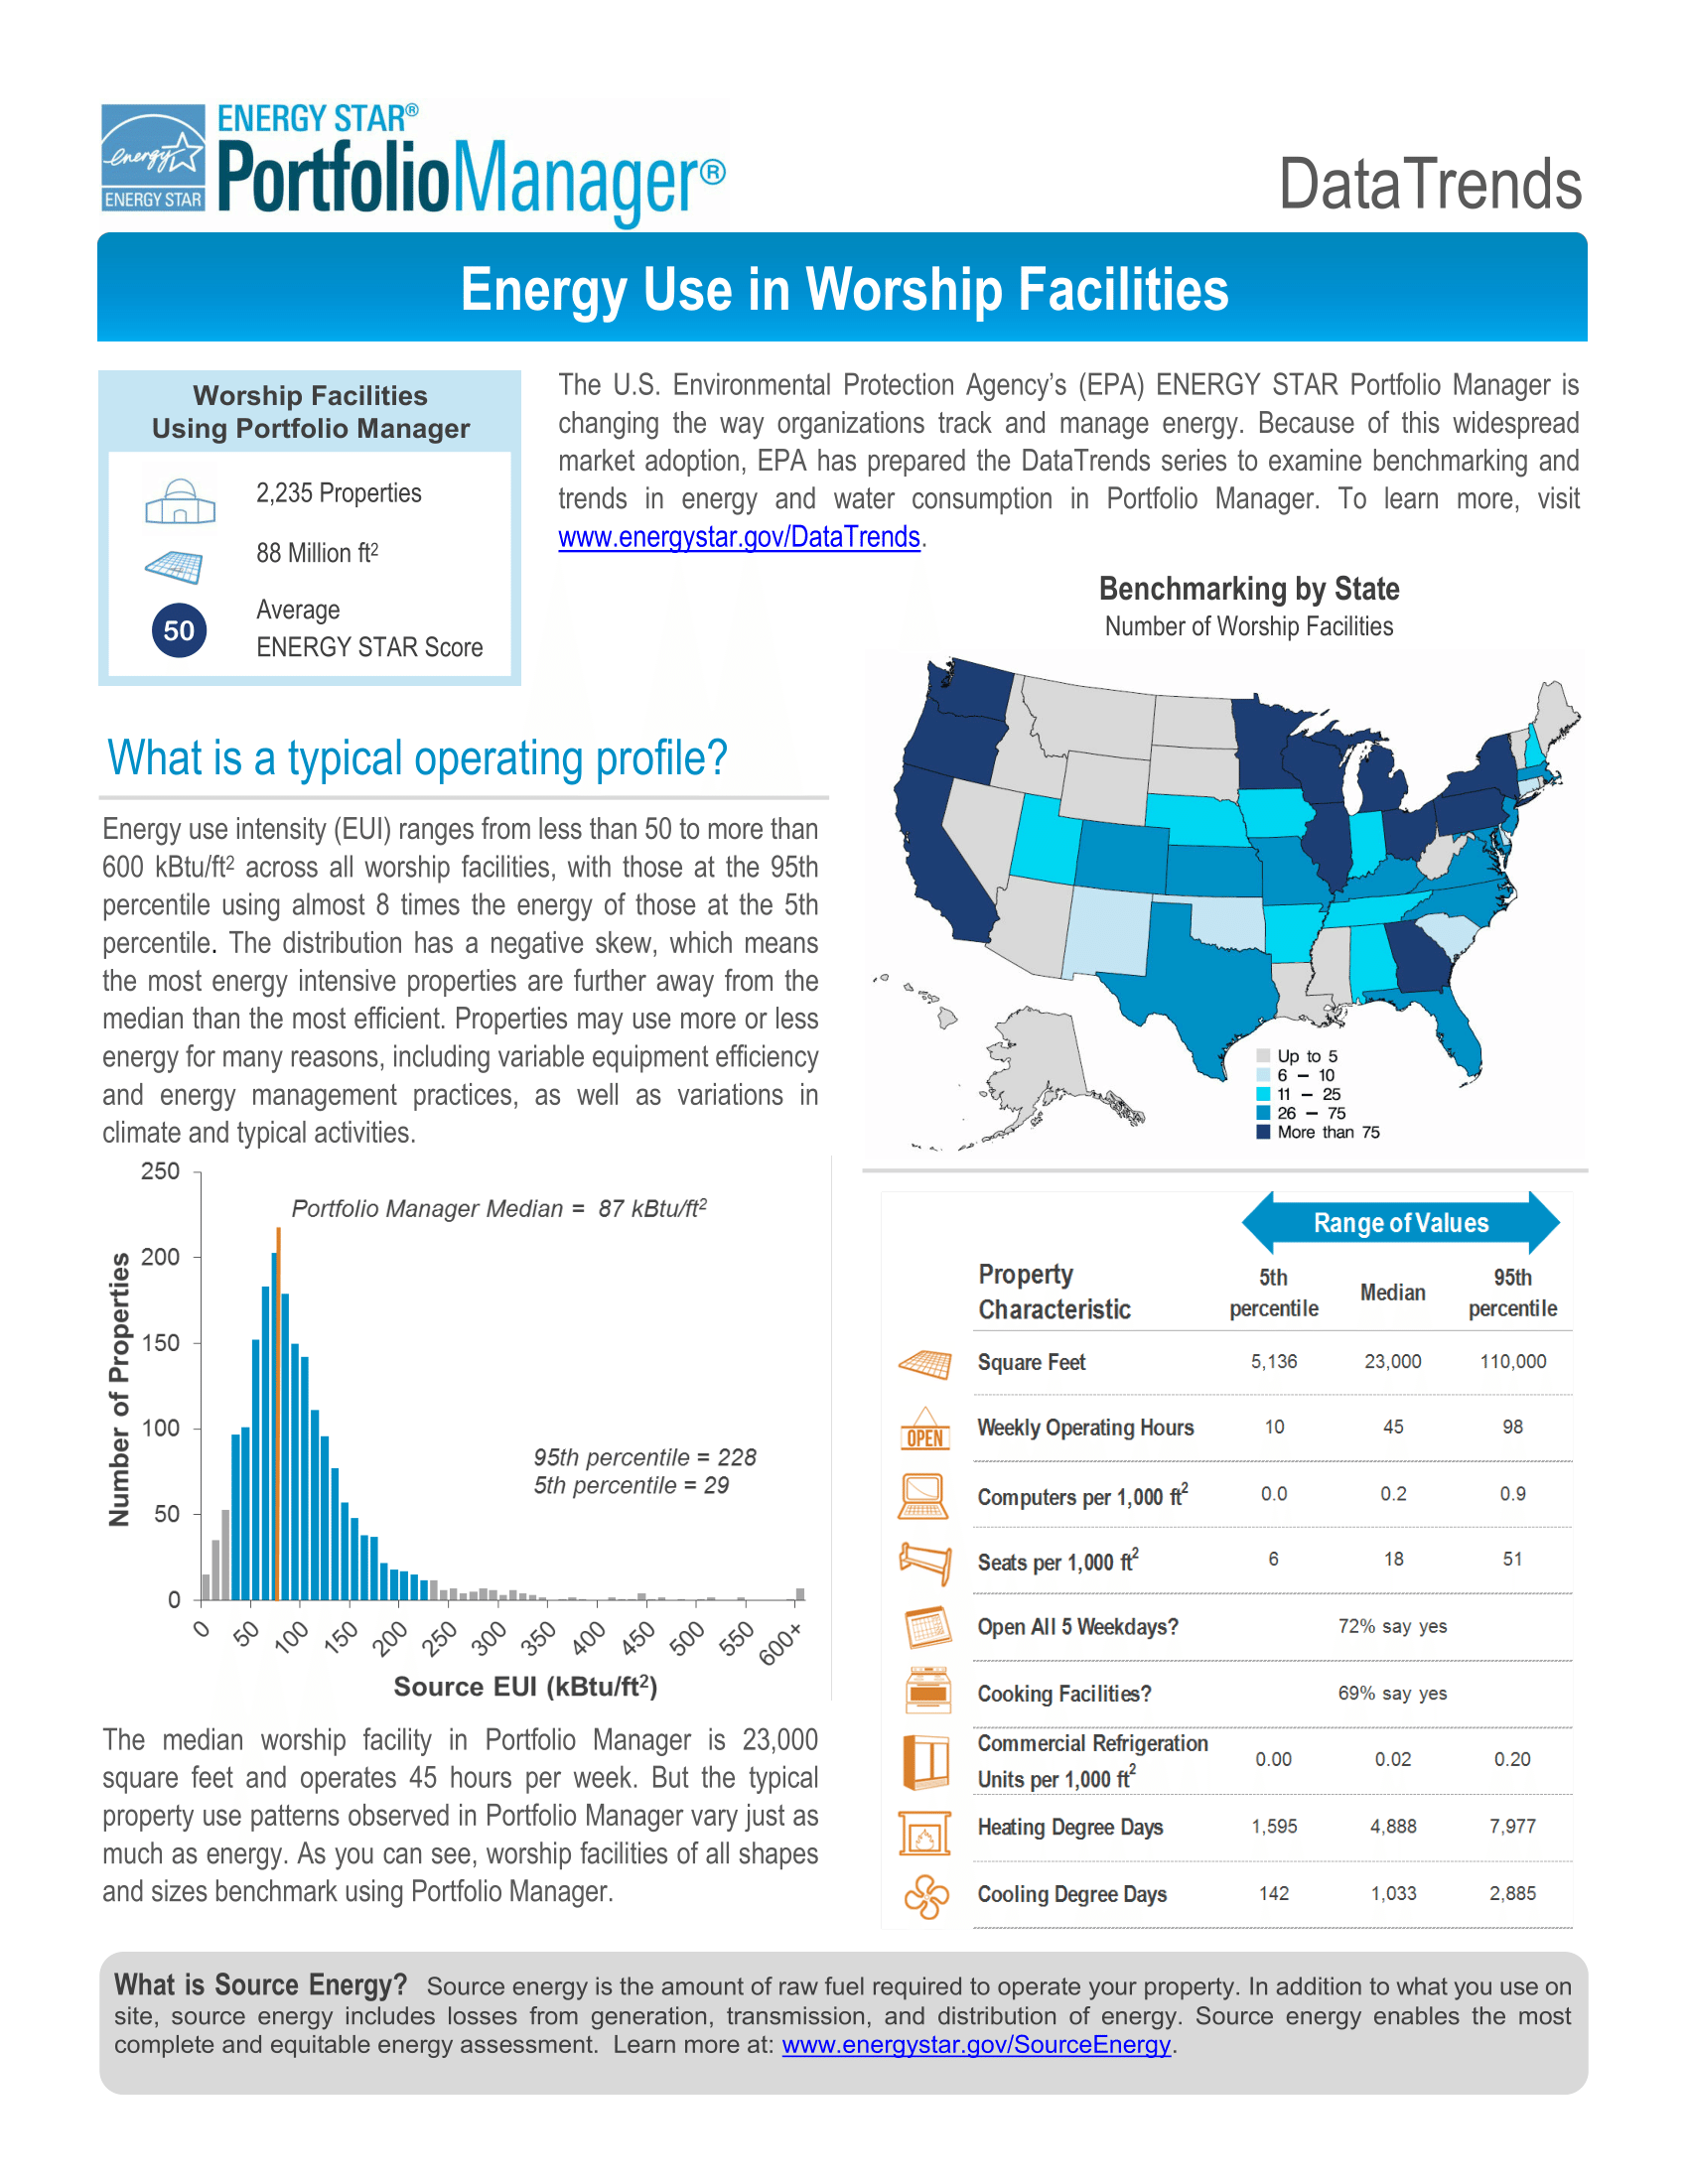 DataTrends: Energy Use in Worship Facilities